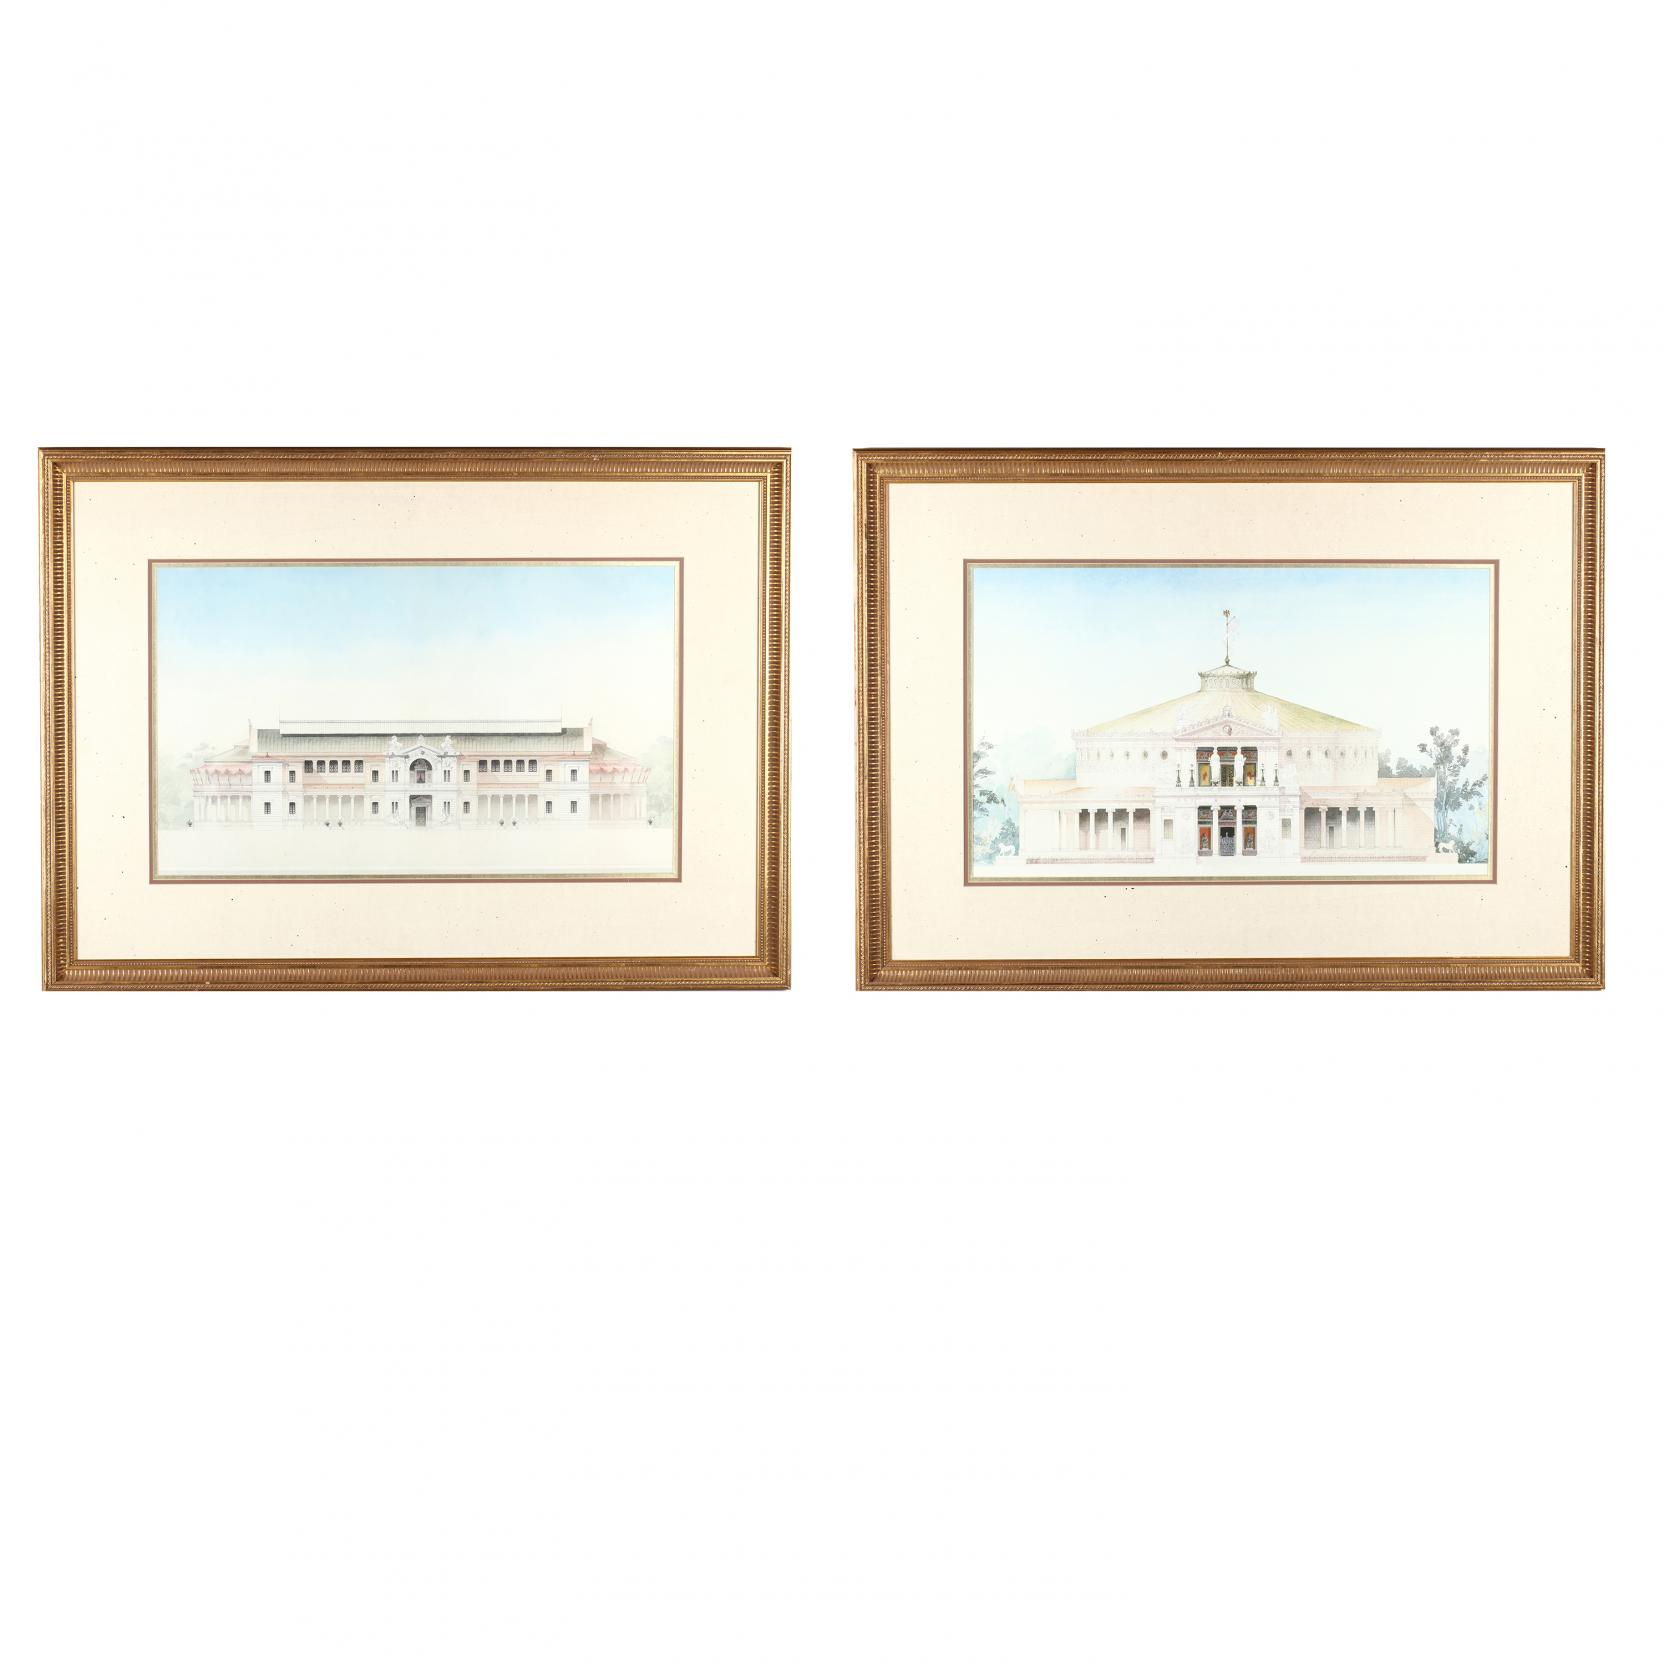 pair-of-large-framed-prints-illustrating-classical-architecture